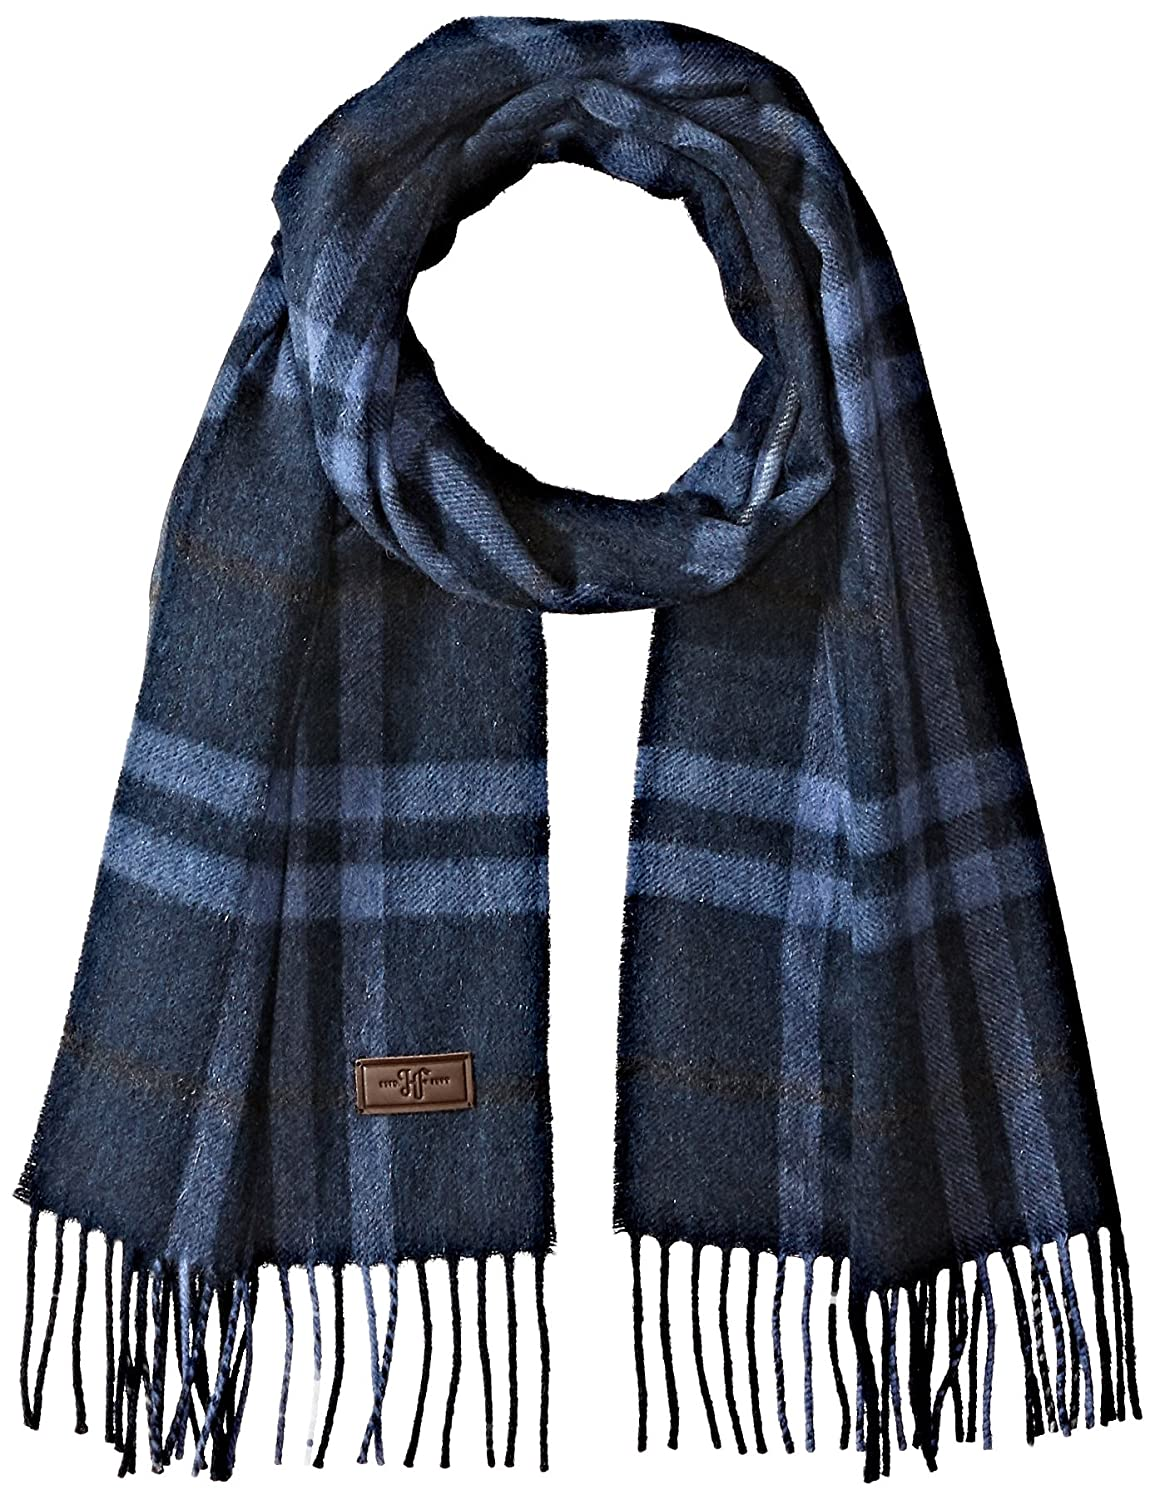 72 inches x 12 inches by Hickey Freeman 100/% Italian Cashmere Men/'s Cashmere Scarf